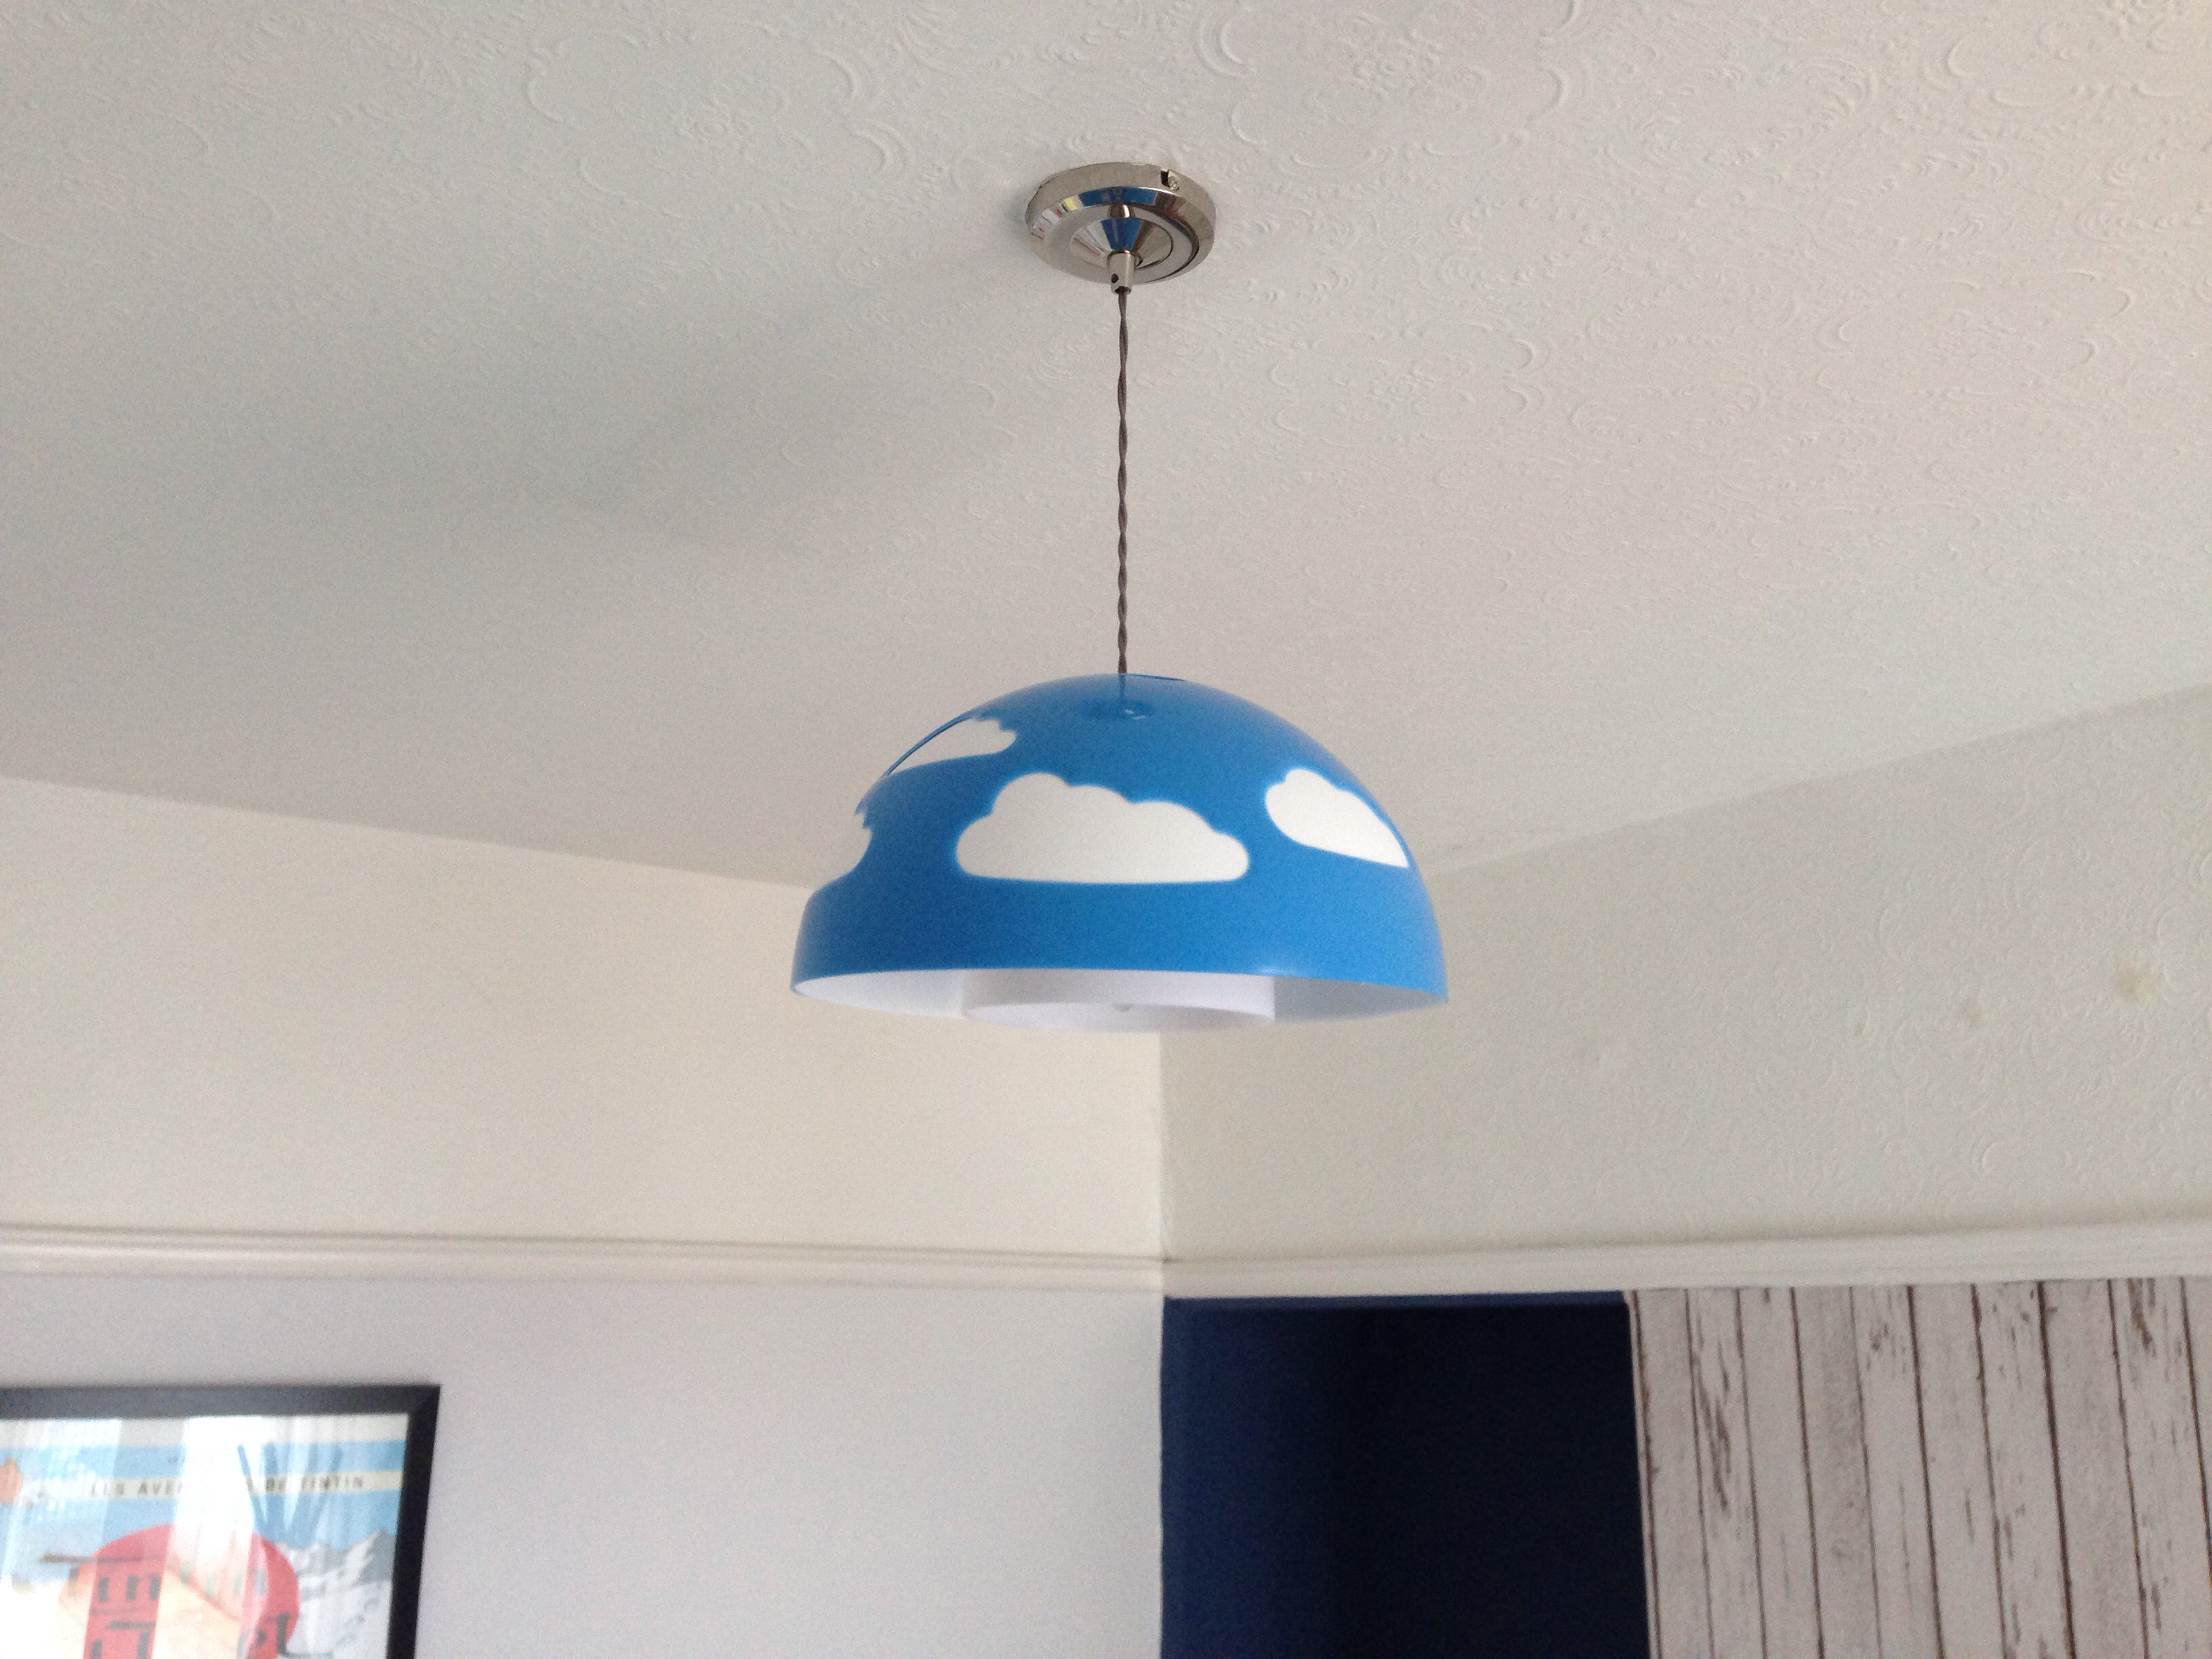 Cloud light pendant, Ikea